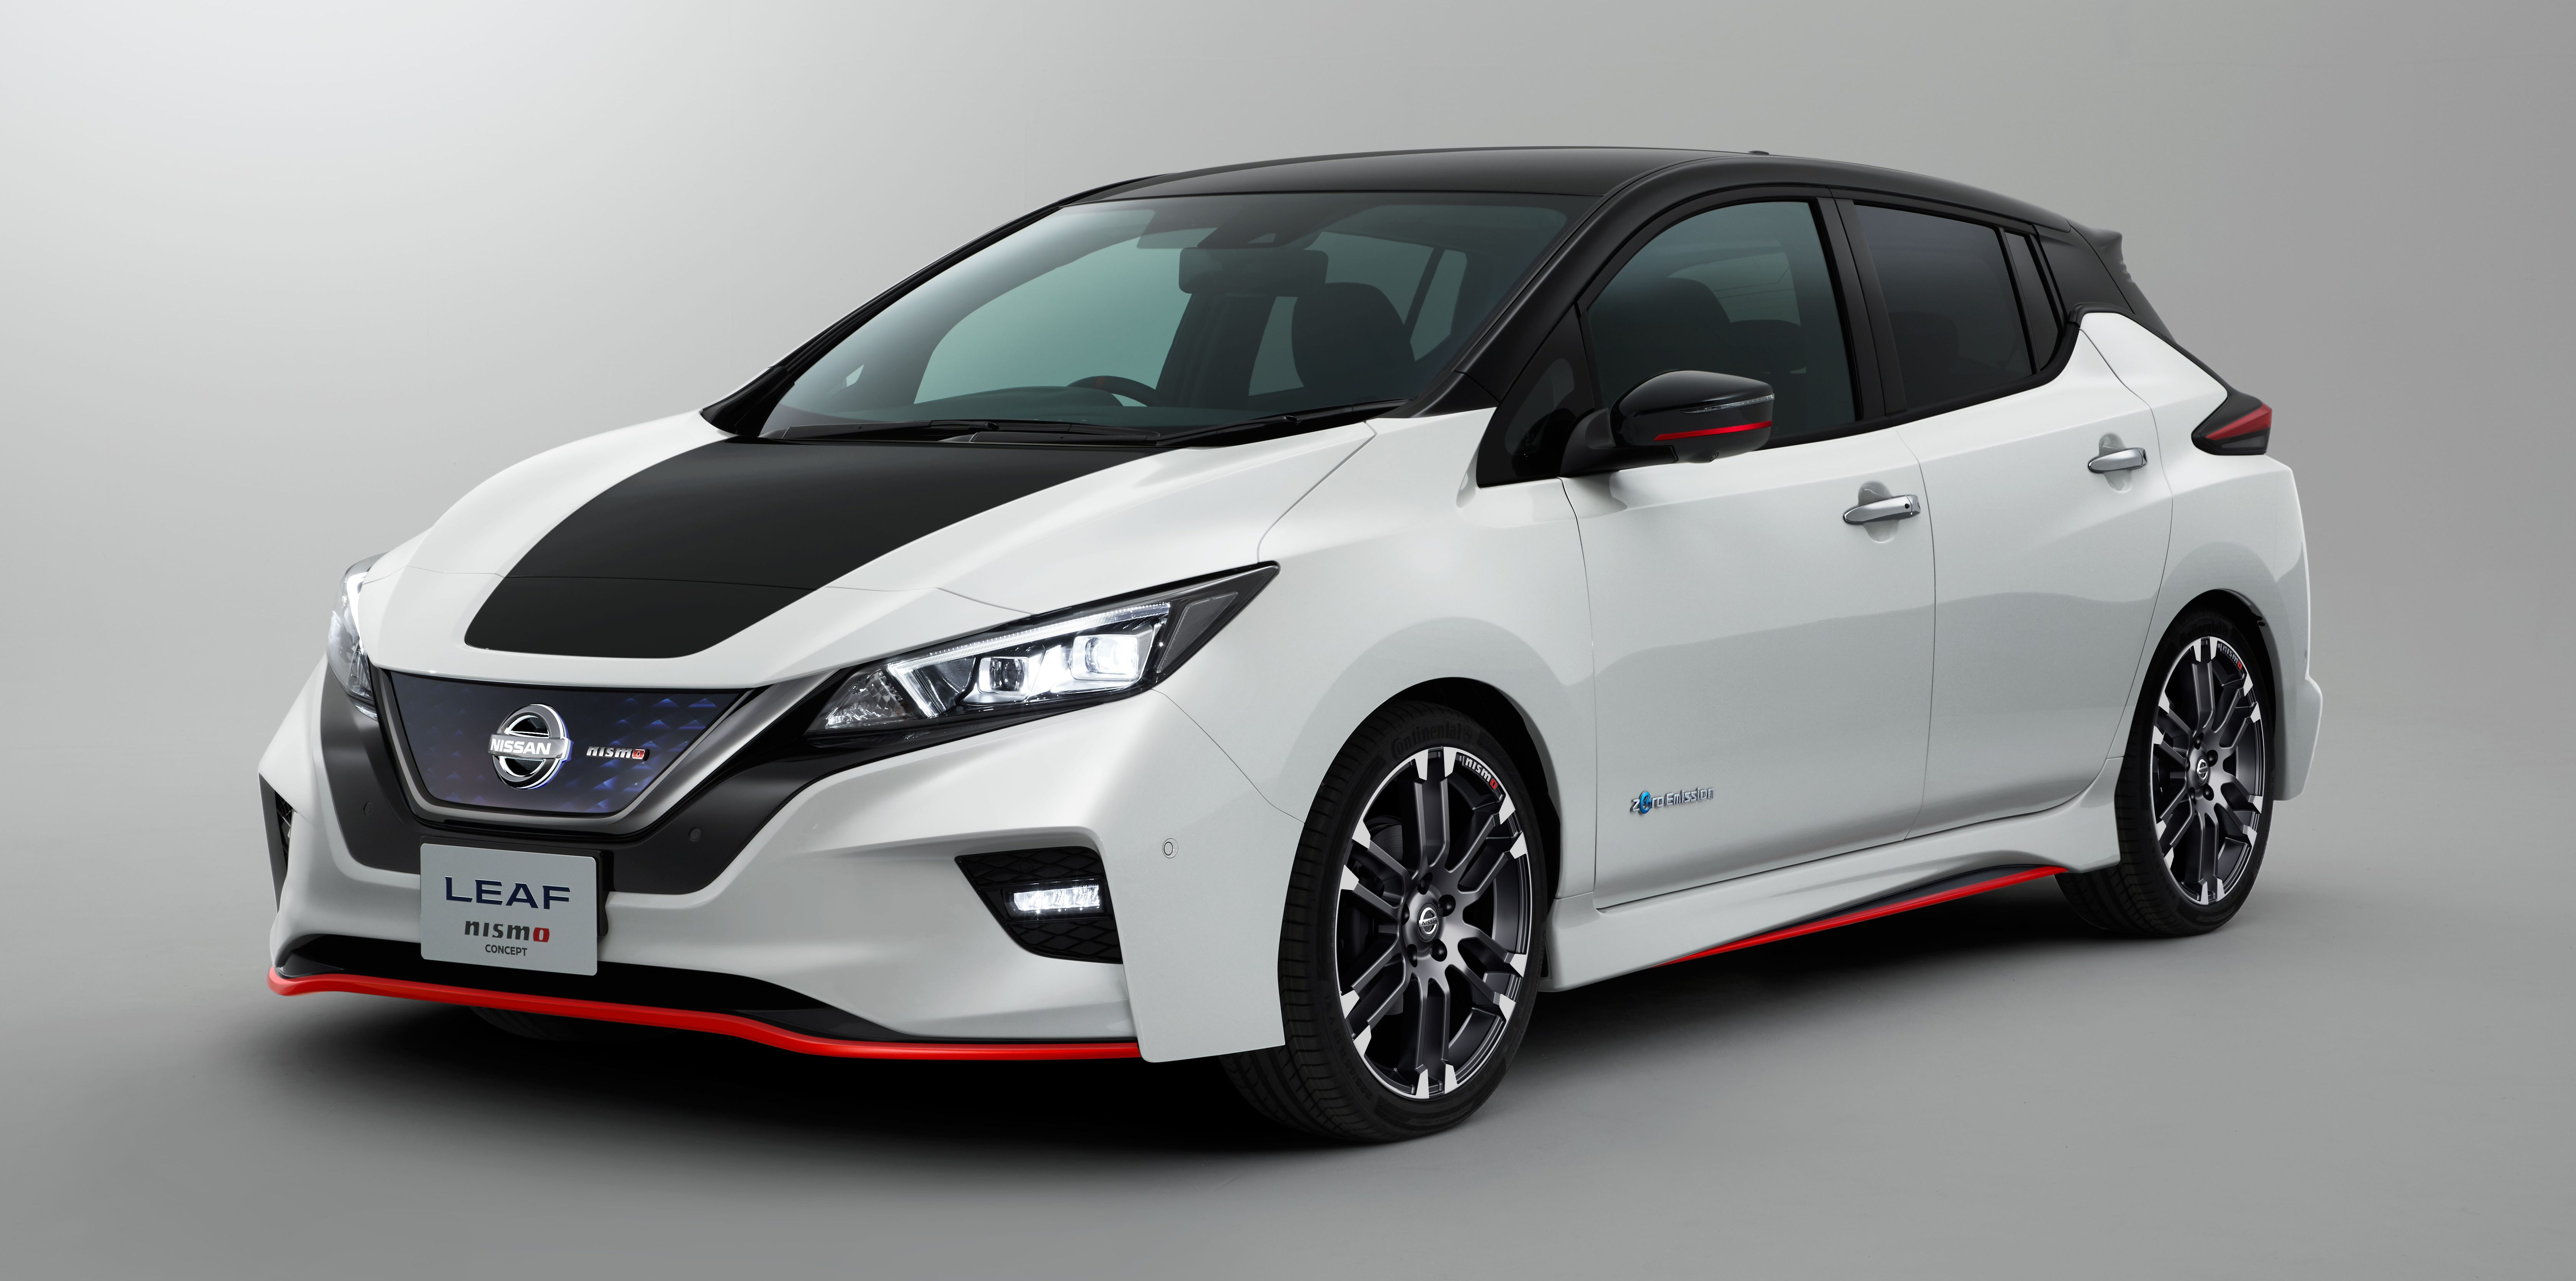 Nissan unveils sexier all-electric next-gen Leaf with Nismo upgrade